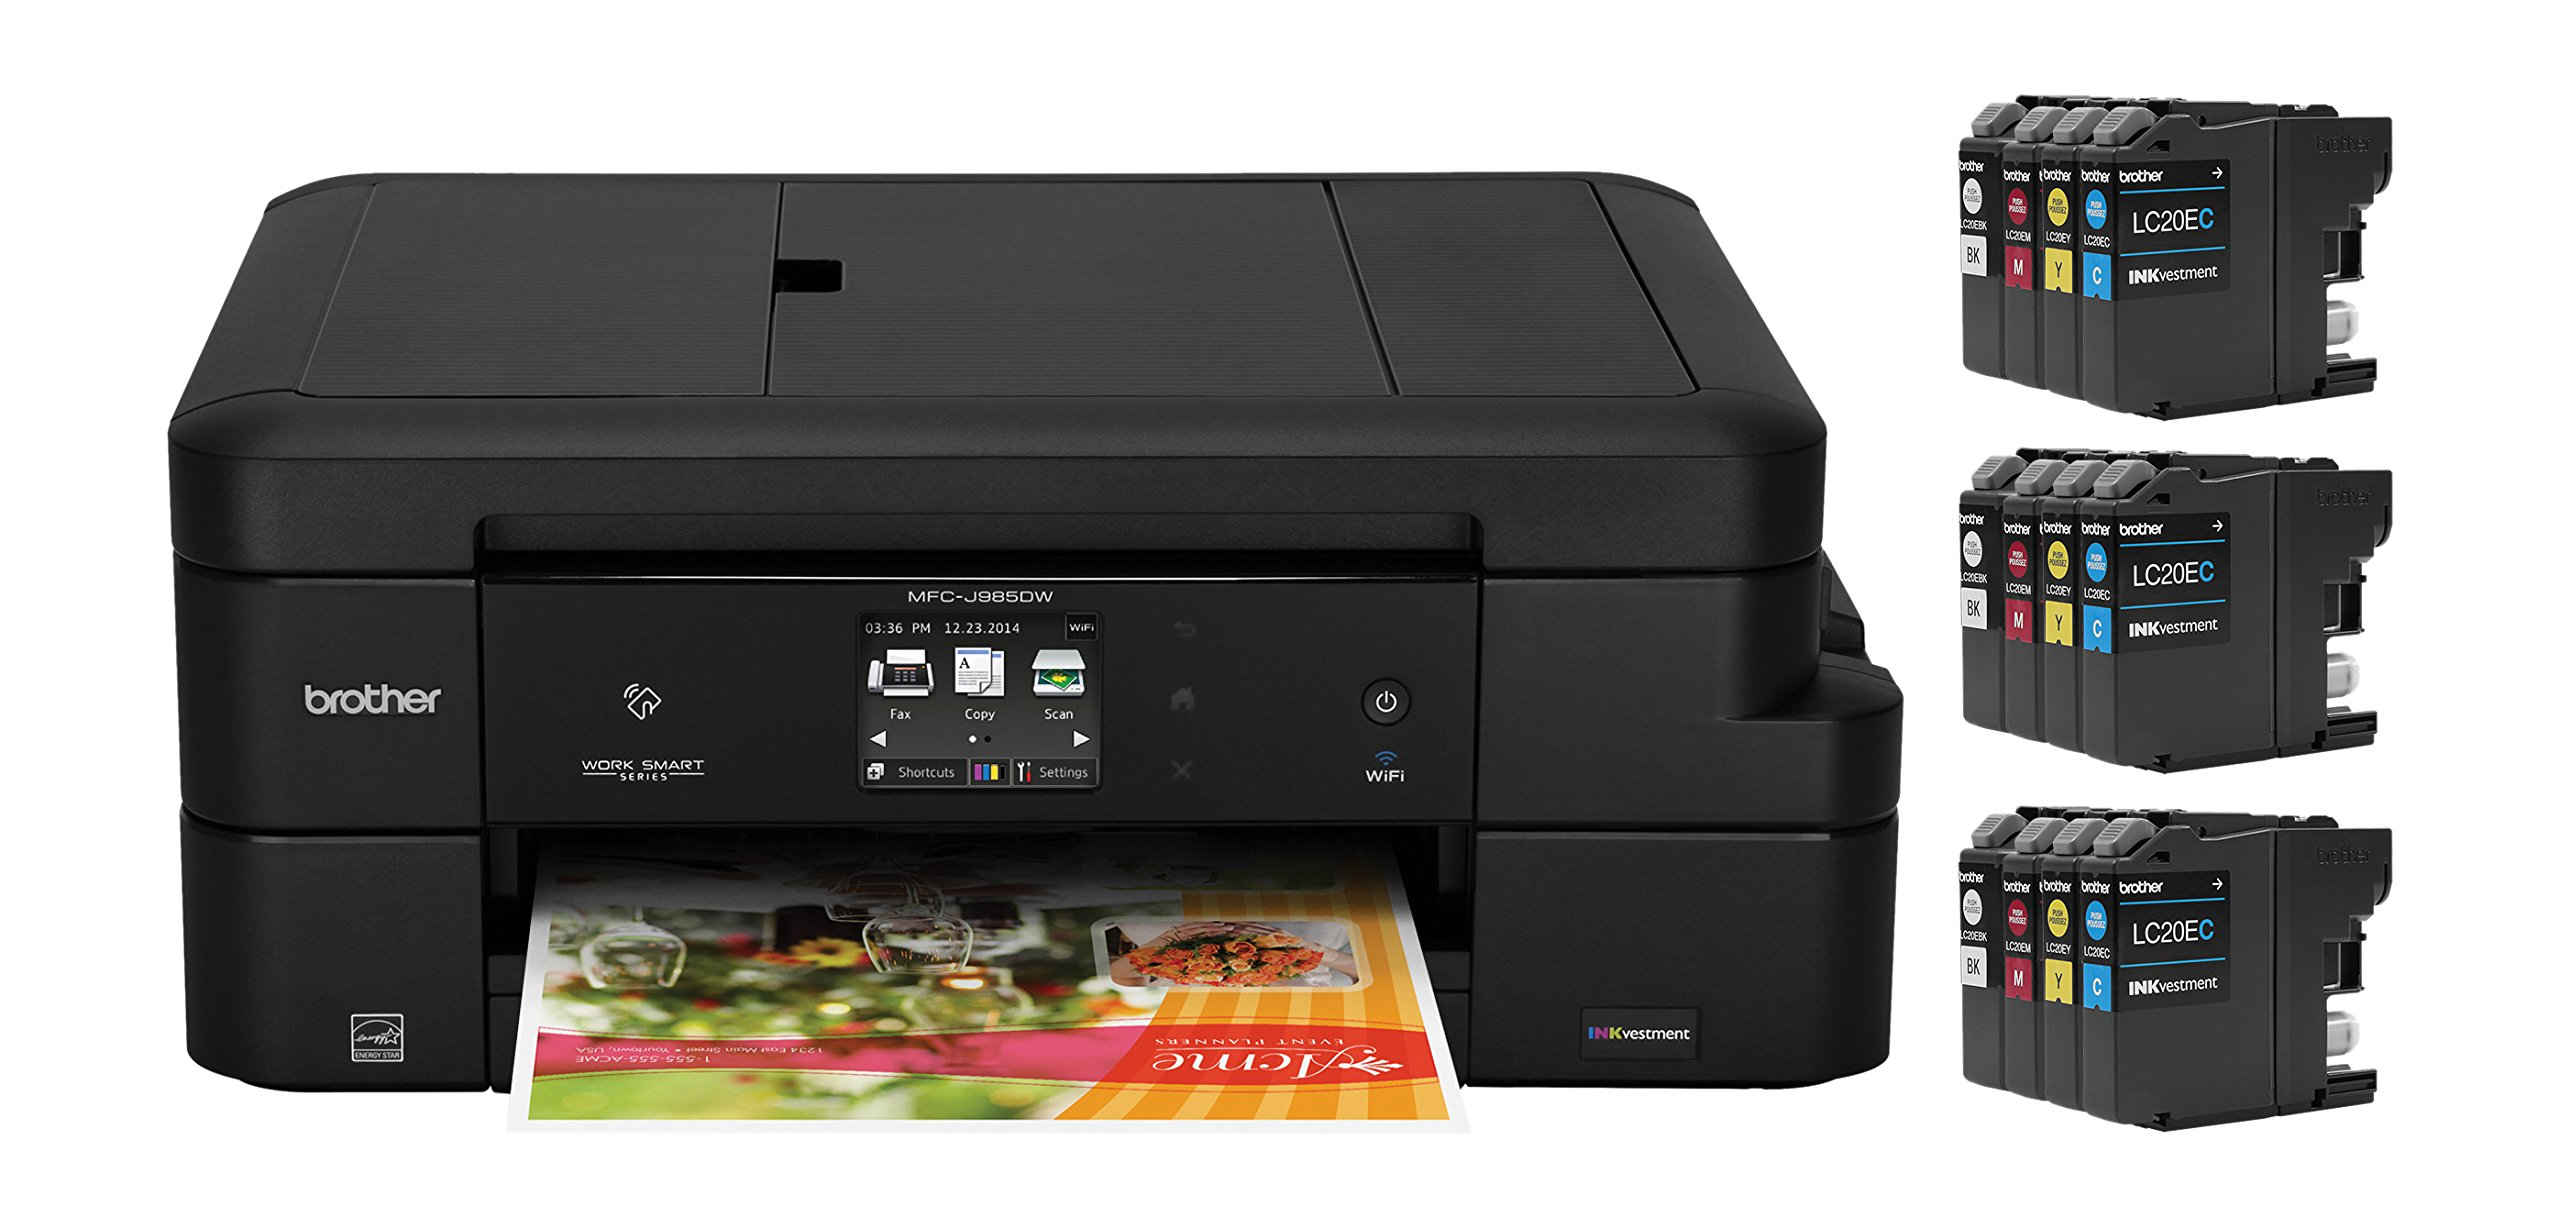 Brother MFC-J985DW XL Inkjet All-in-One Color Printer, Duplex and Wireless, Amazon Dash Replenishment Enabled,  2 Years of Ink Included